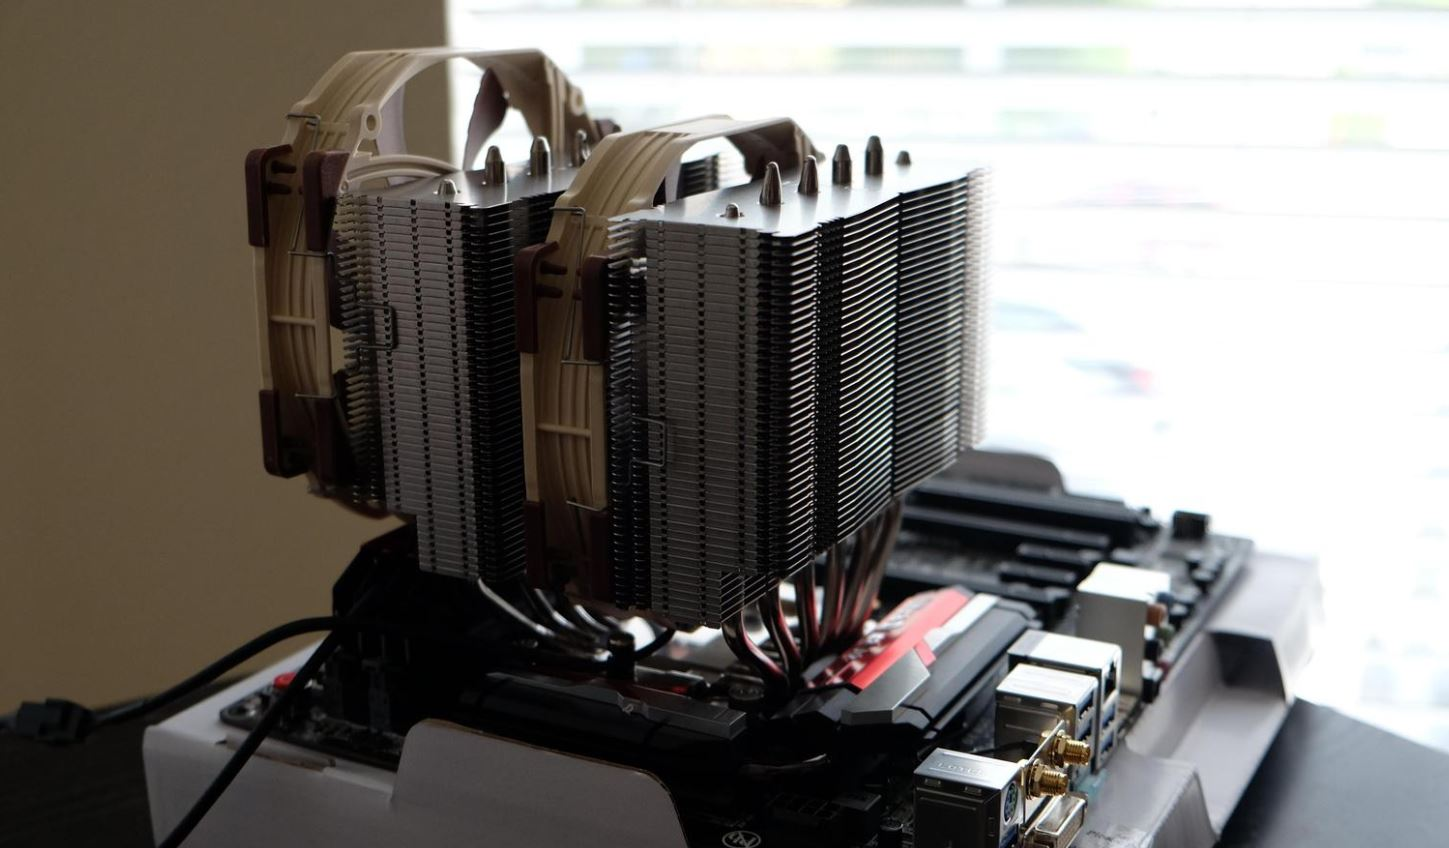 Selecting The Best CPU Cooler For Your Gaming PC | Shacknews